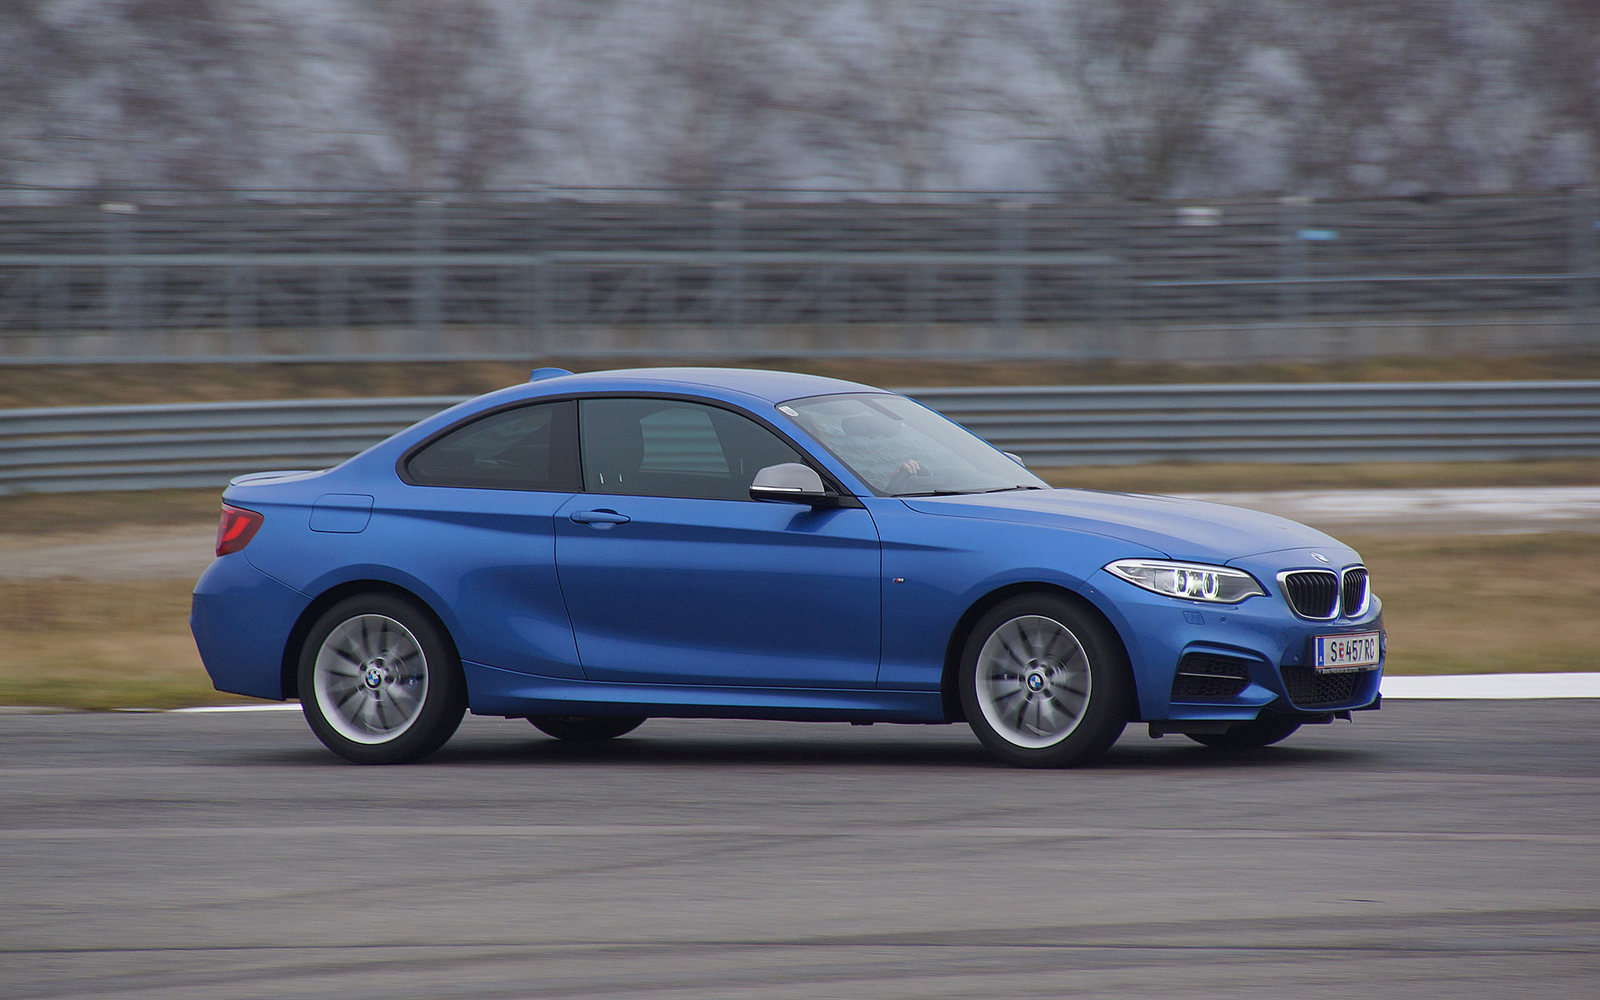 BMW M235i in Melk